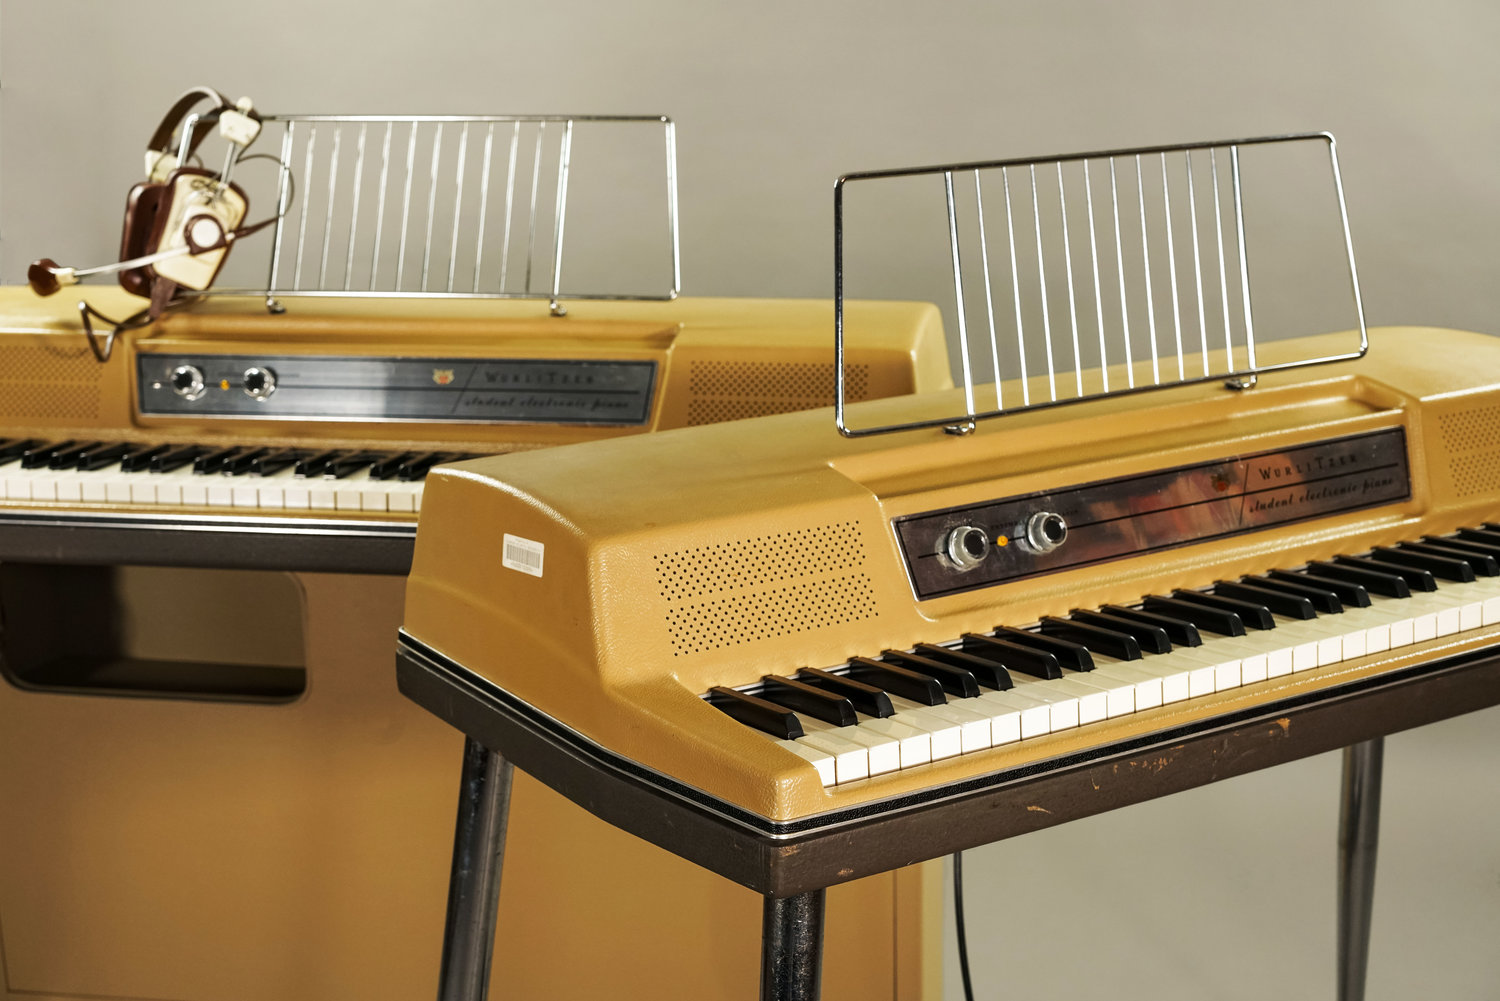 What's the Difference Between a Wurlitzer 140 and 200a?